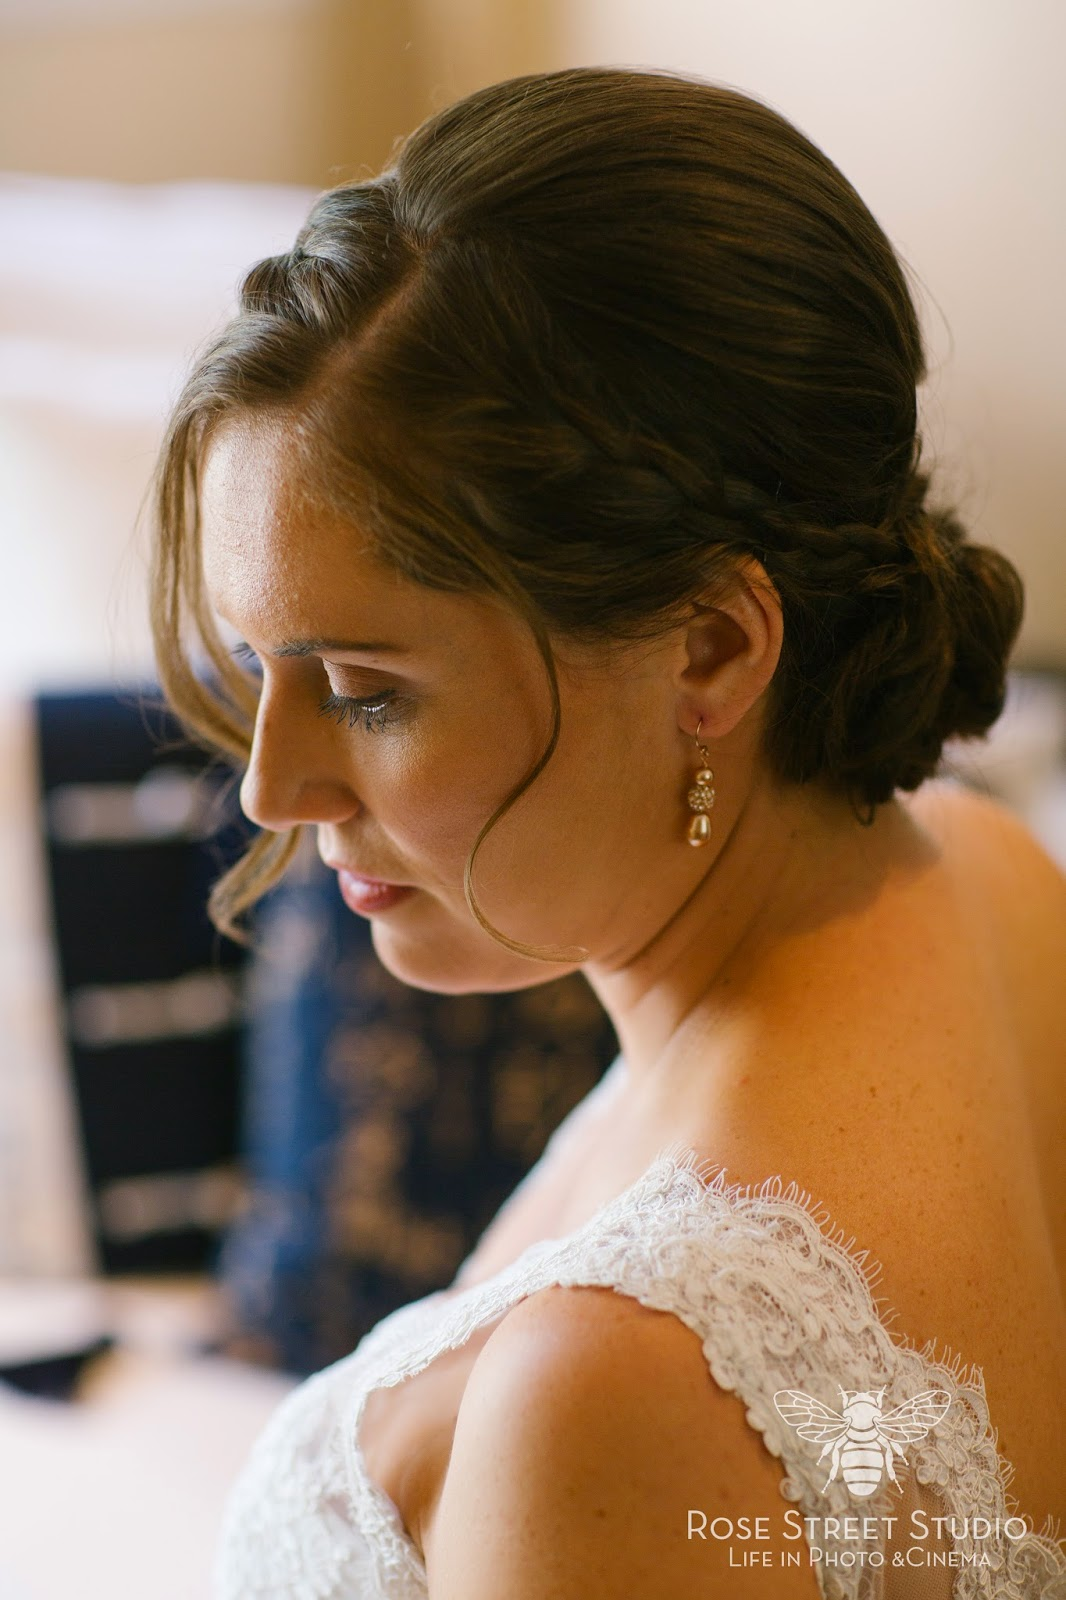 Bridal Updo with braids and face framing pieces l Rose Street Photo l Take the Cake Event Planning